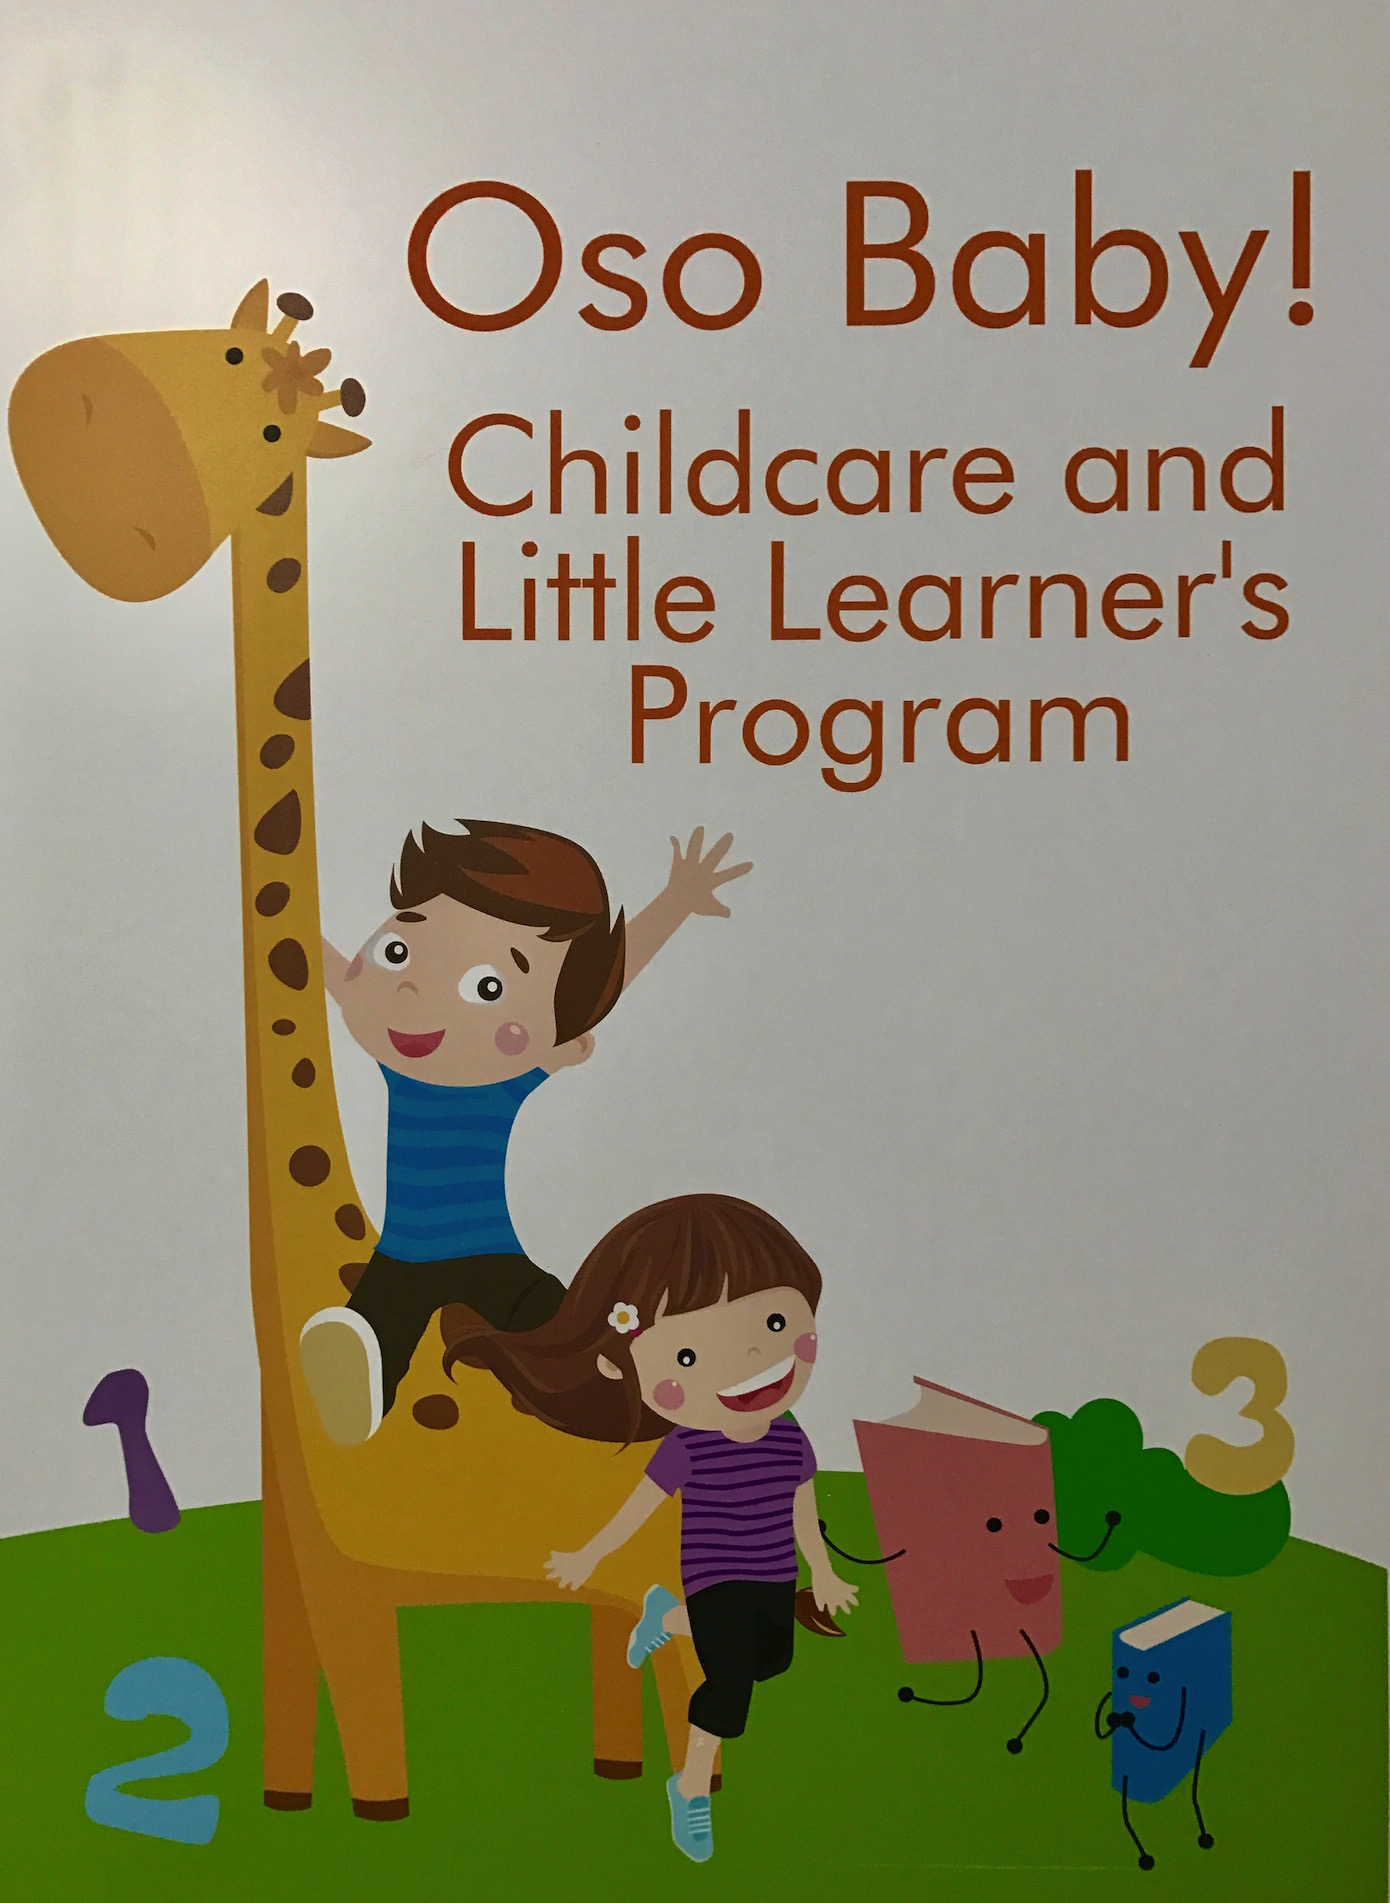 Oso Baby! Childcare and Little Learner's Program